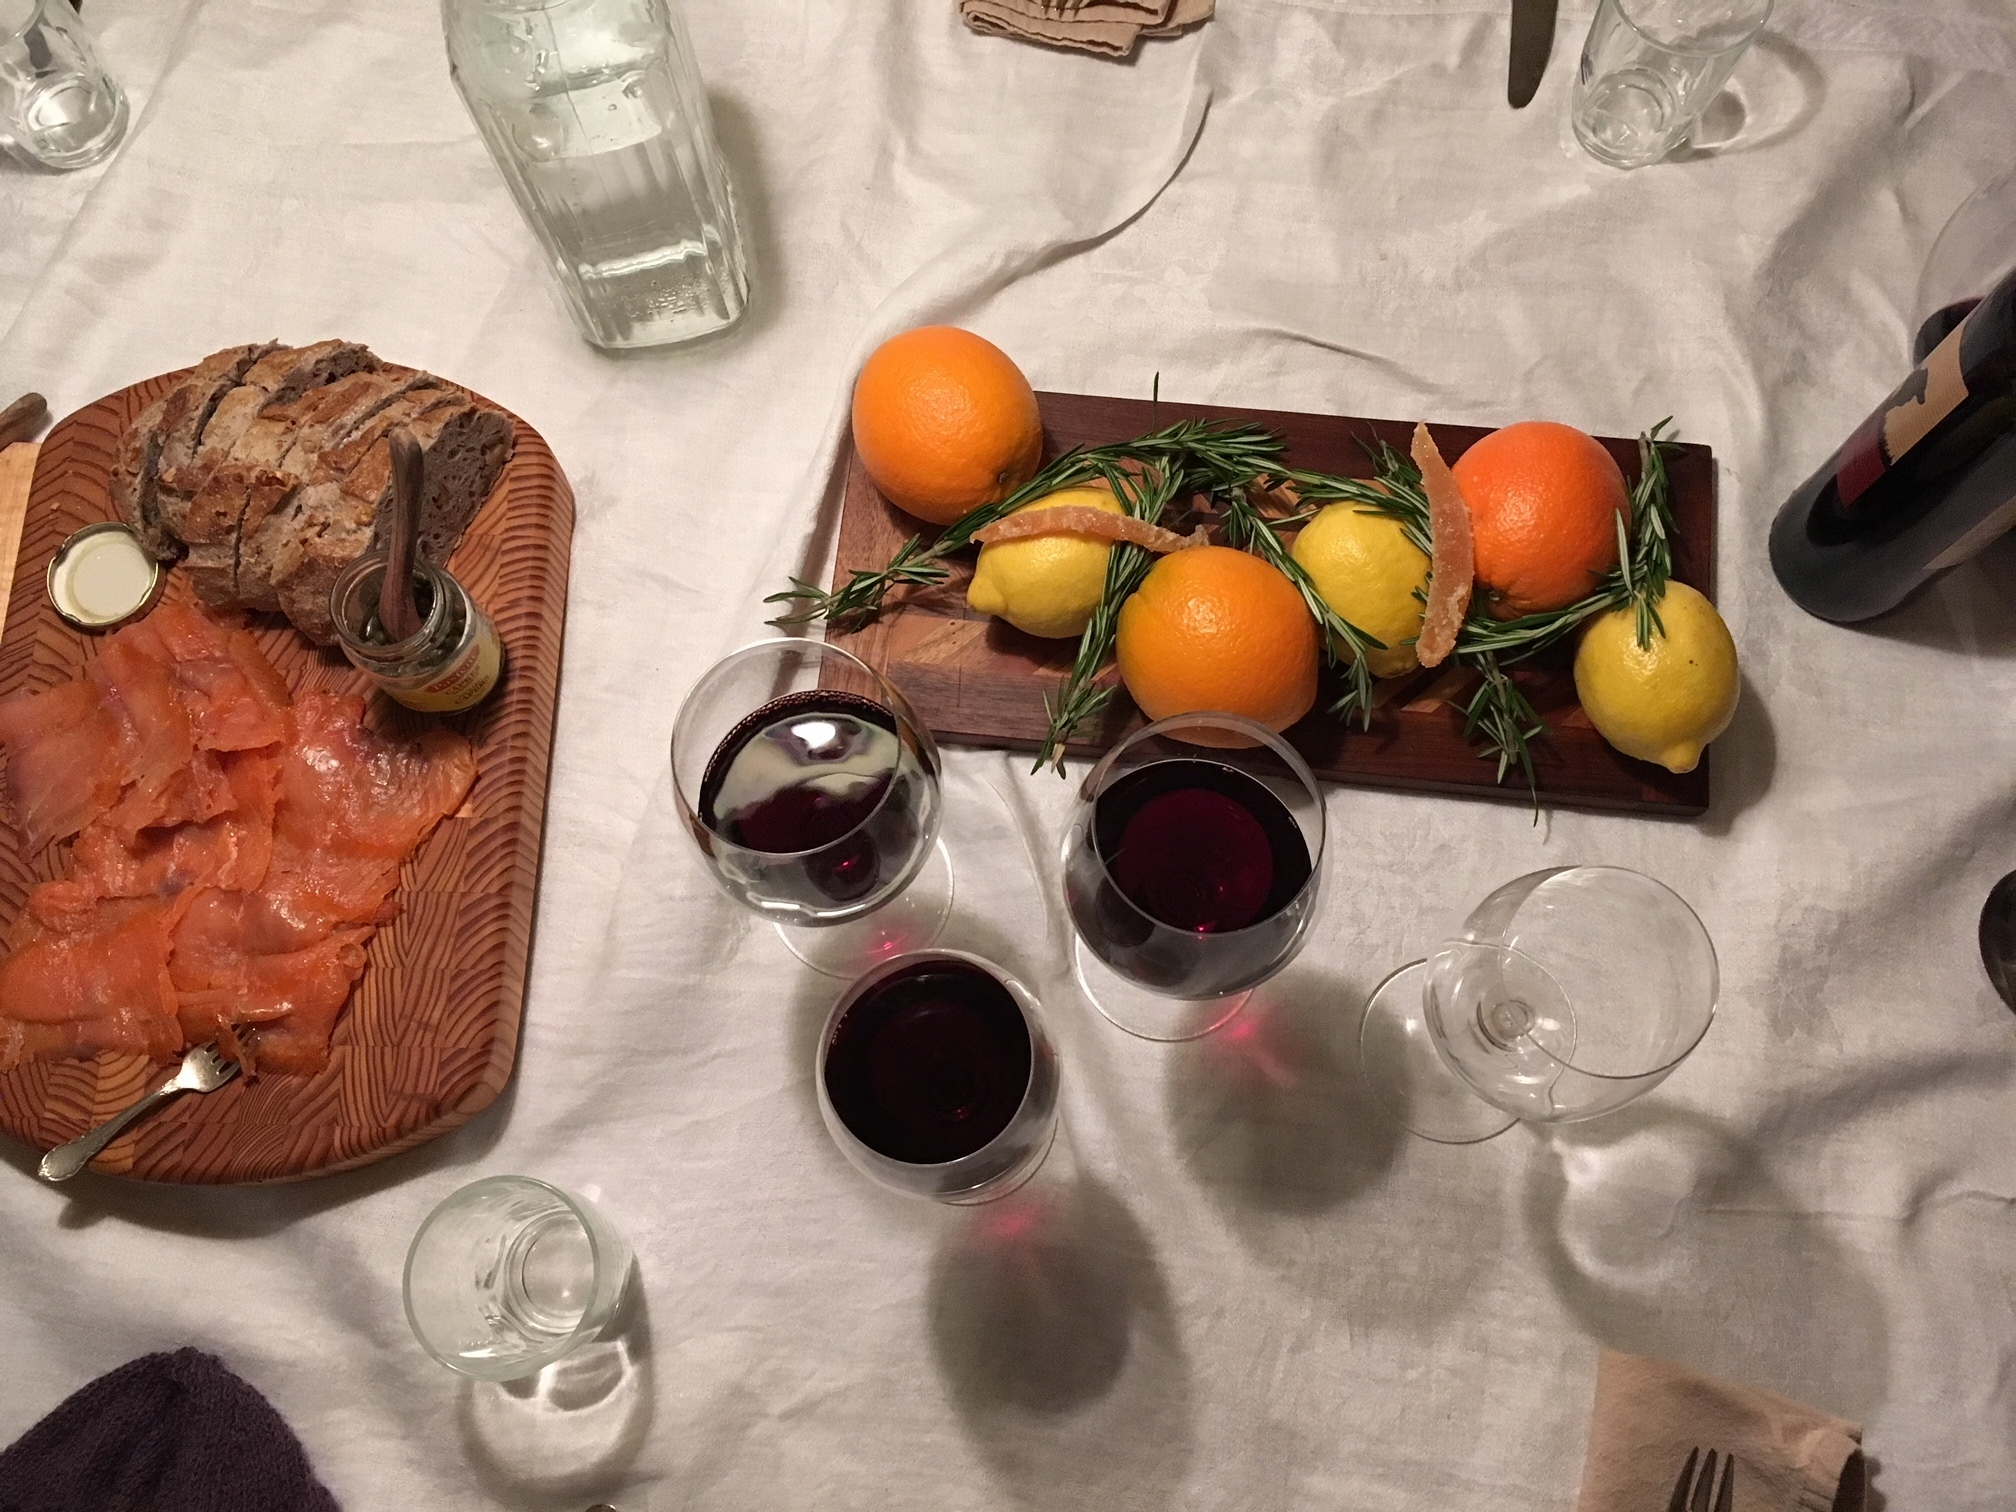 Smoked salmon and a festive centrepiece: a table set for a holiday dinner with friends